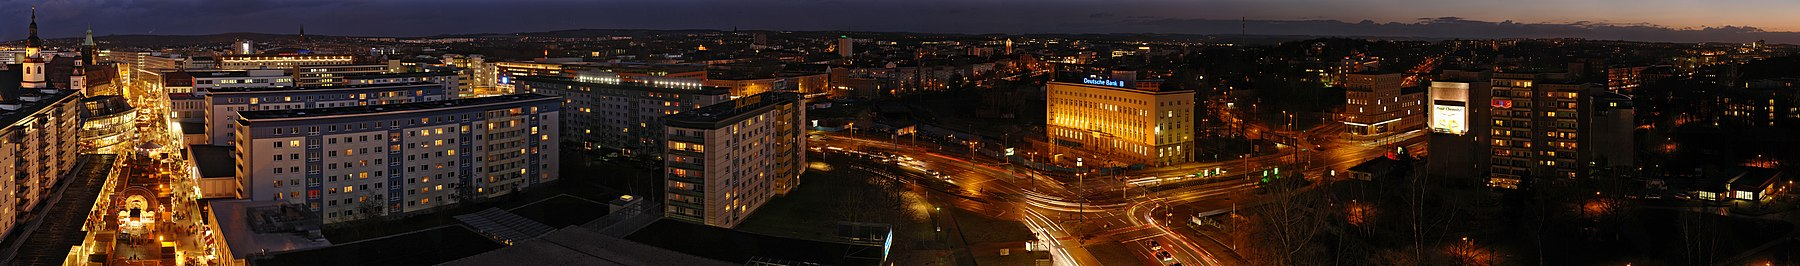 C-Rosenhof-night-gp.jpg